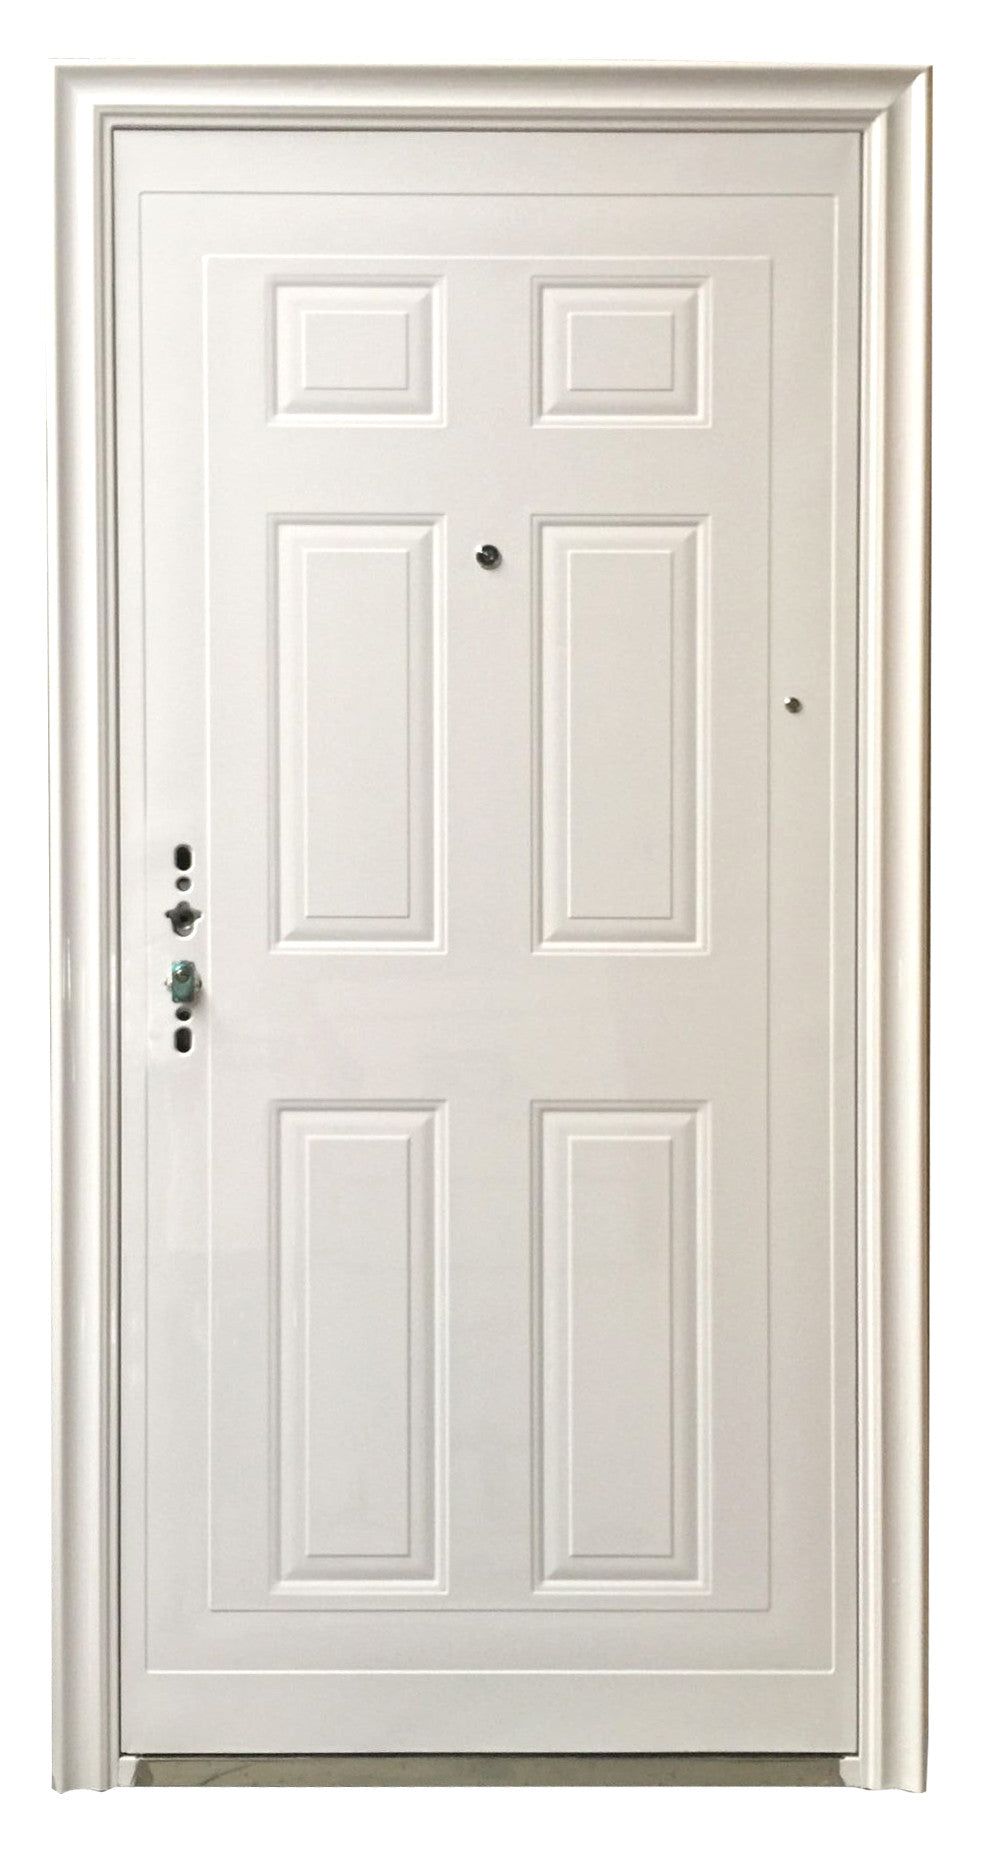 a29e022b6f9d8 DW-S011 Single Steel Security Door Color White – THE HOME EXPO